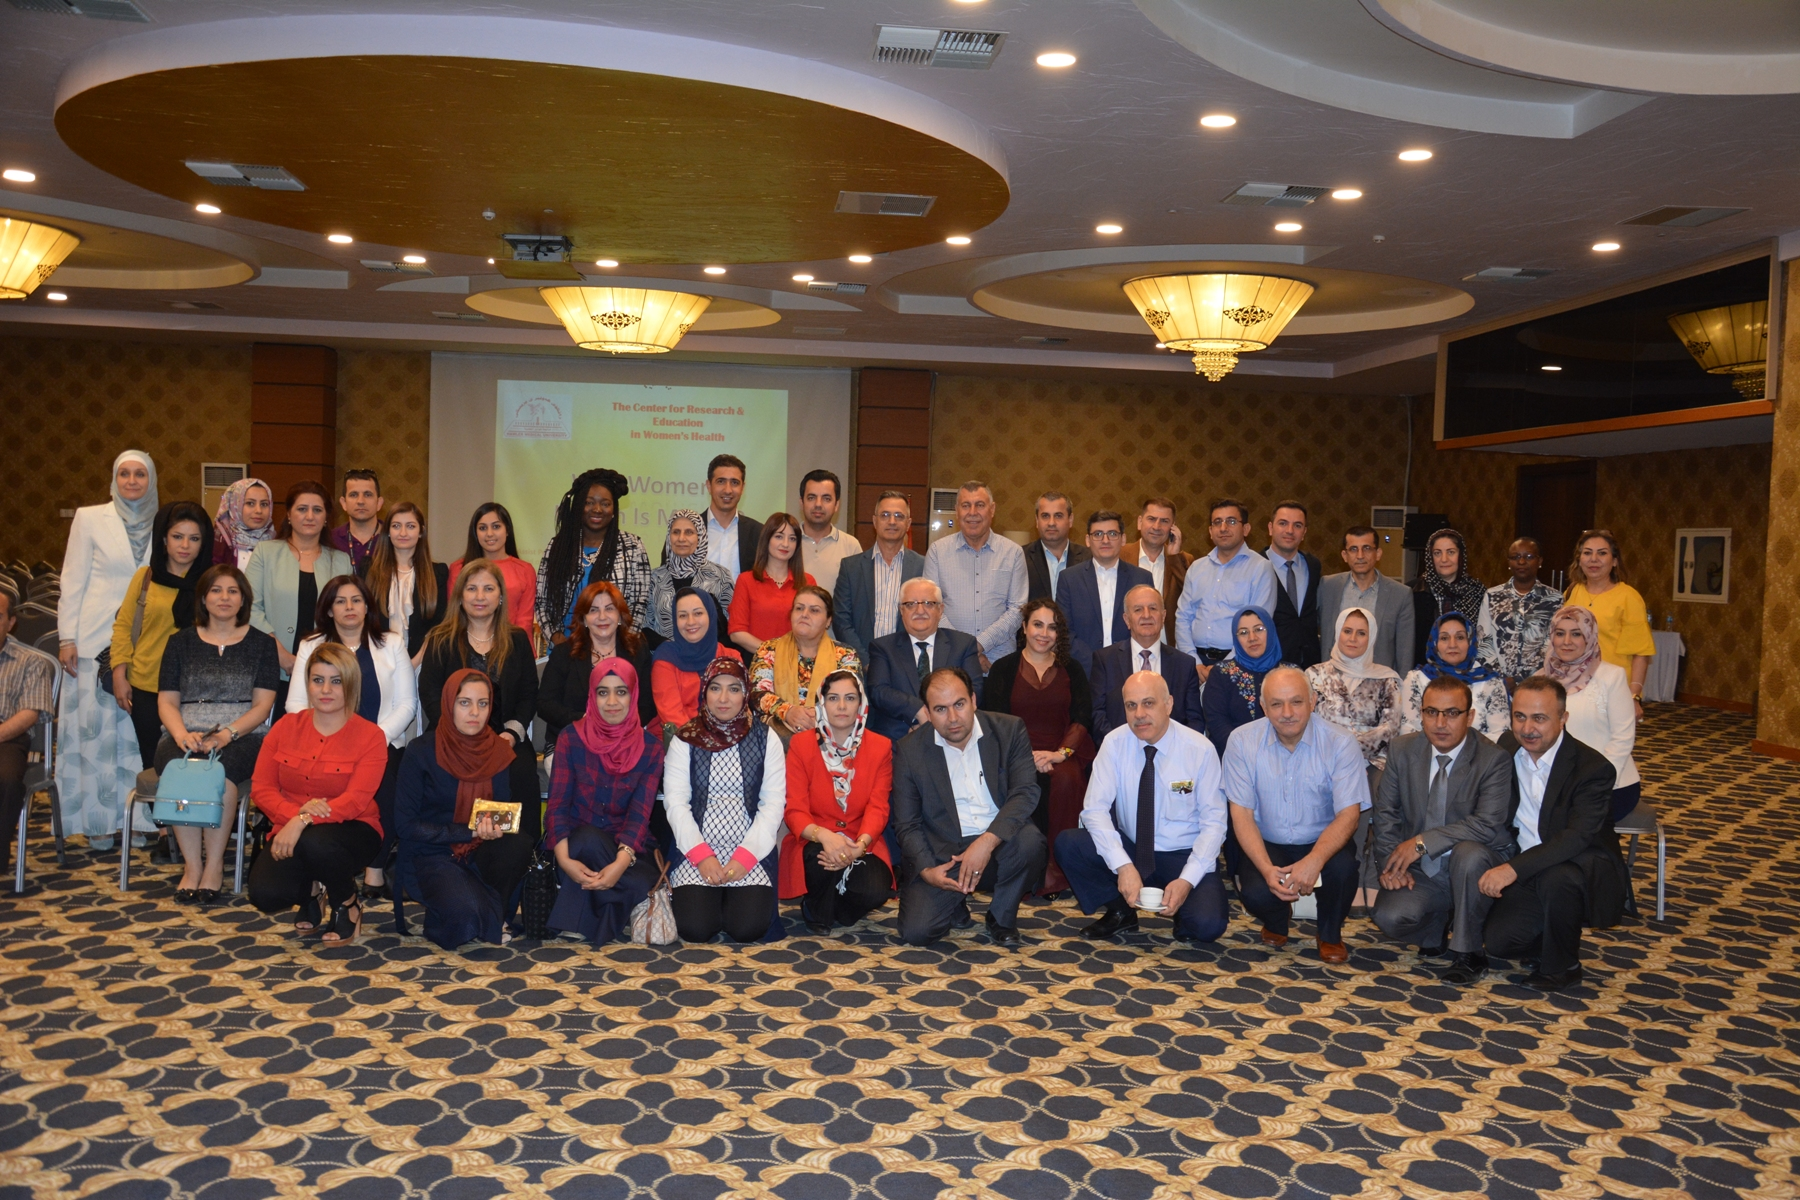 Research, Health, Education and Policy Leaders in Iraq